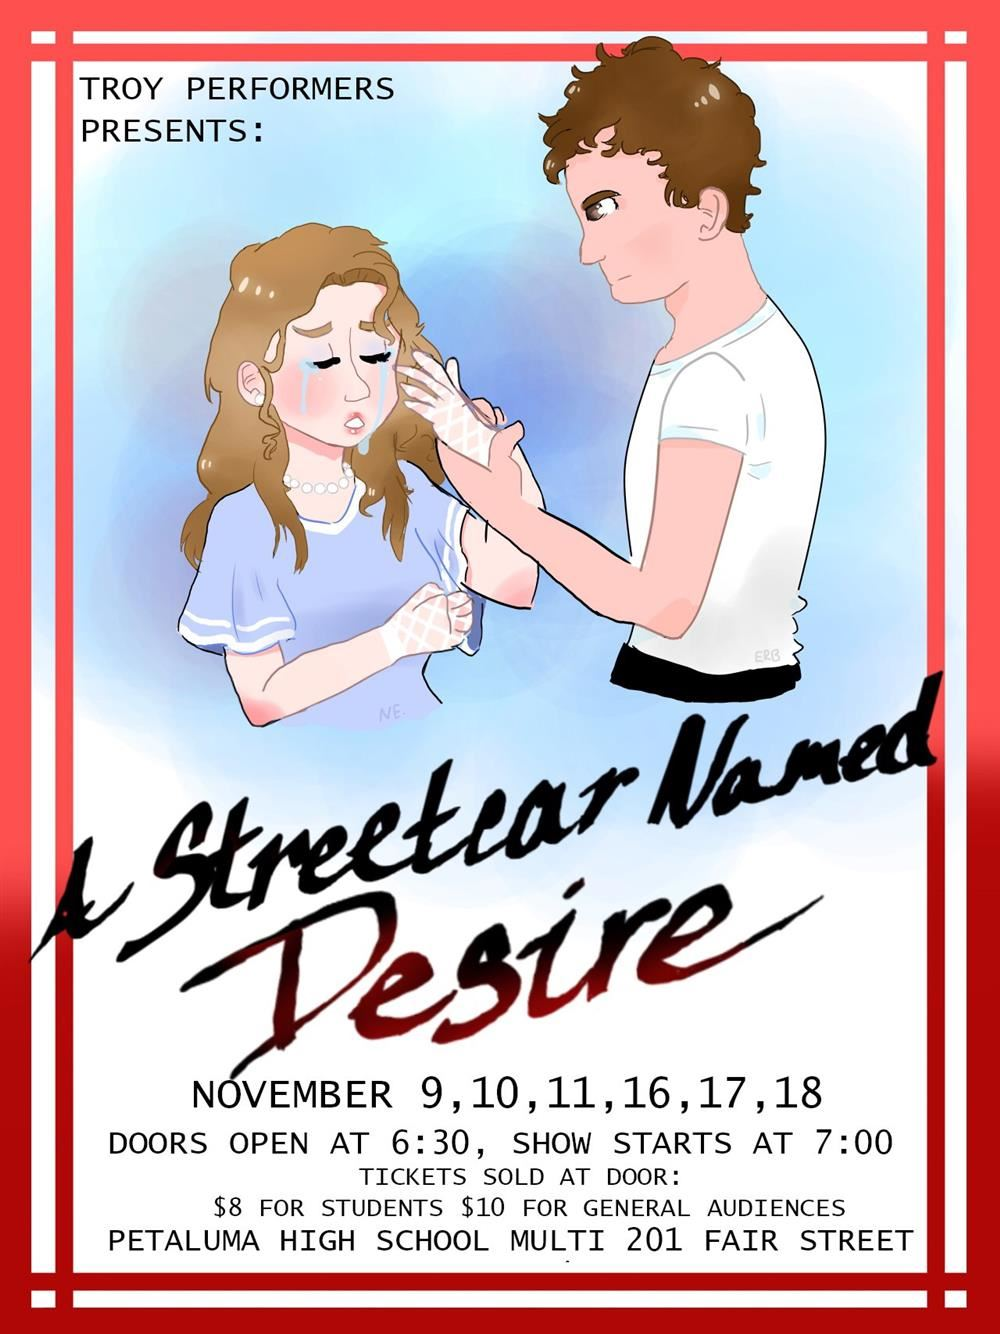 Troy Performers Presents:  A Streetcar Named Desire